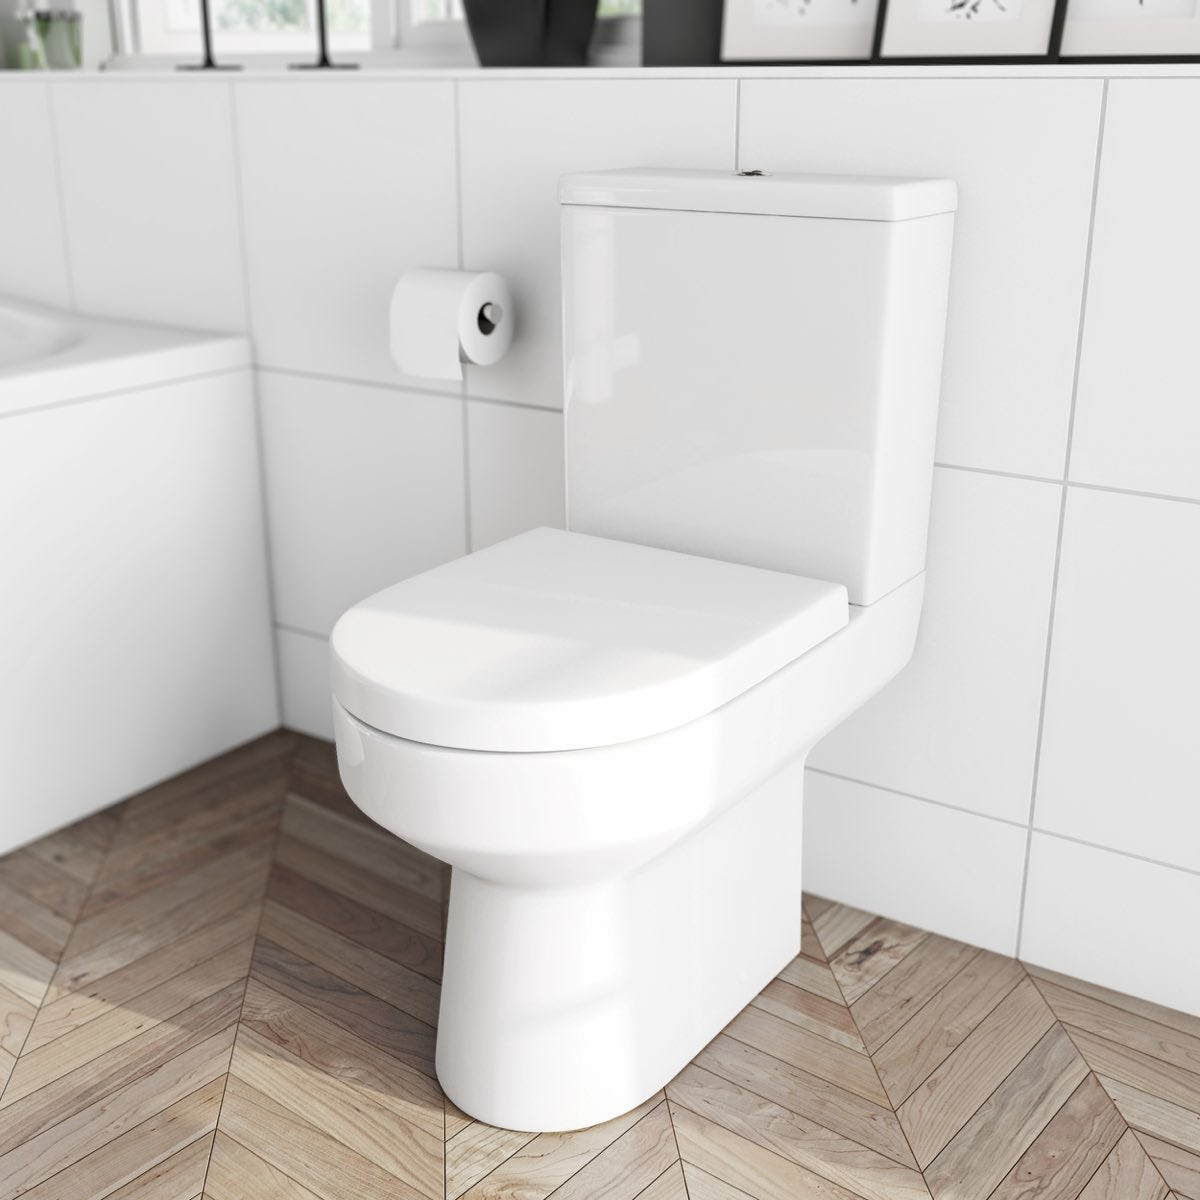 oakley close coupled toilet with soft close seat. Black Bedroom Furniture Sets. Home Design Ideas